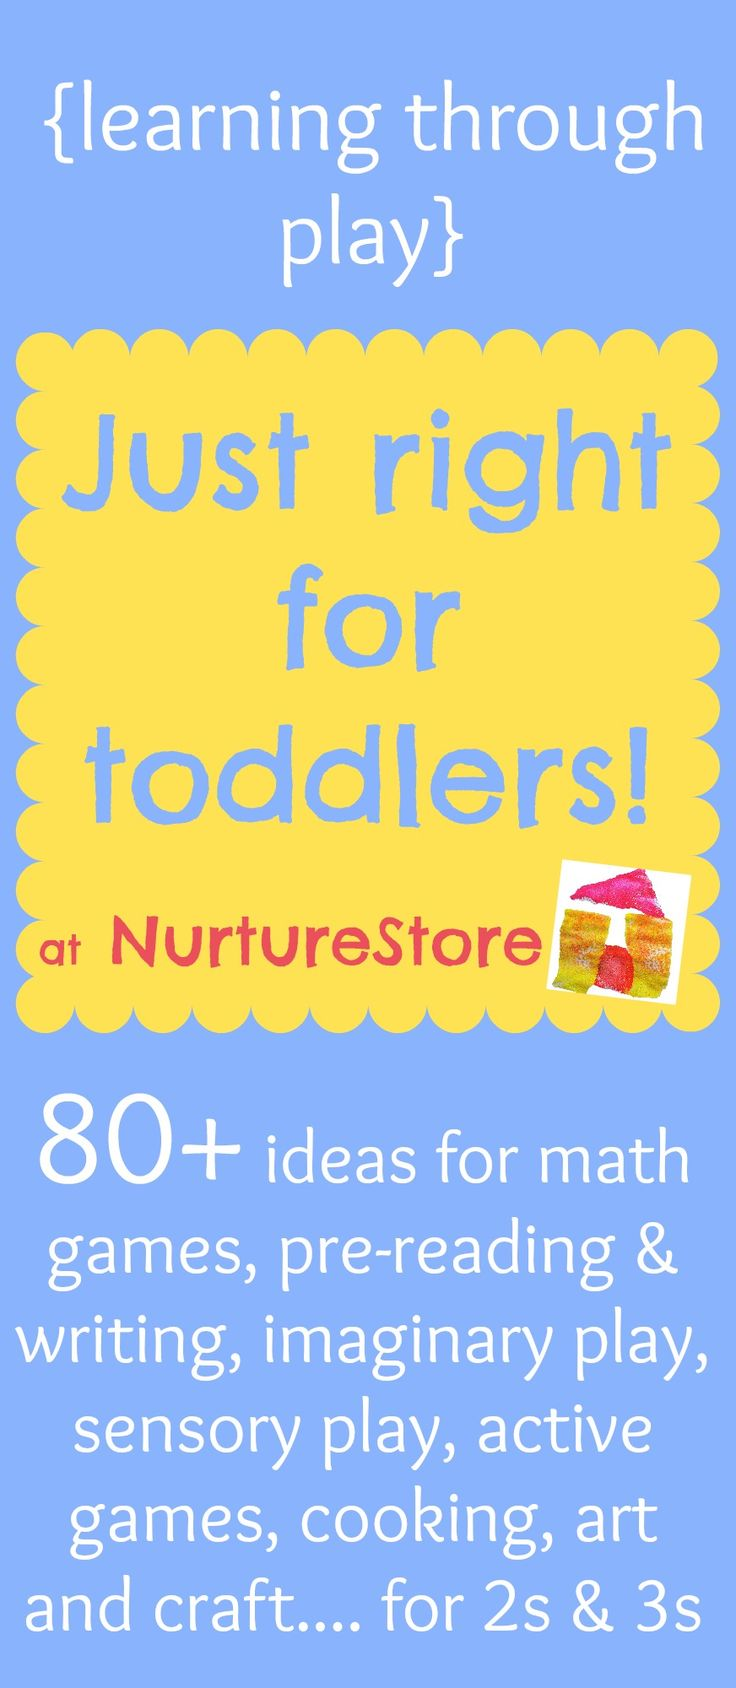 Activities for toddlers :: learning through play - NurtureStore